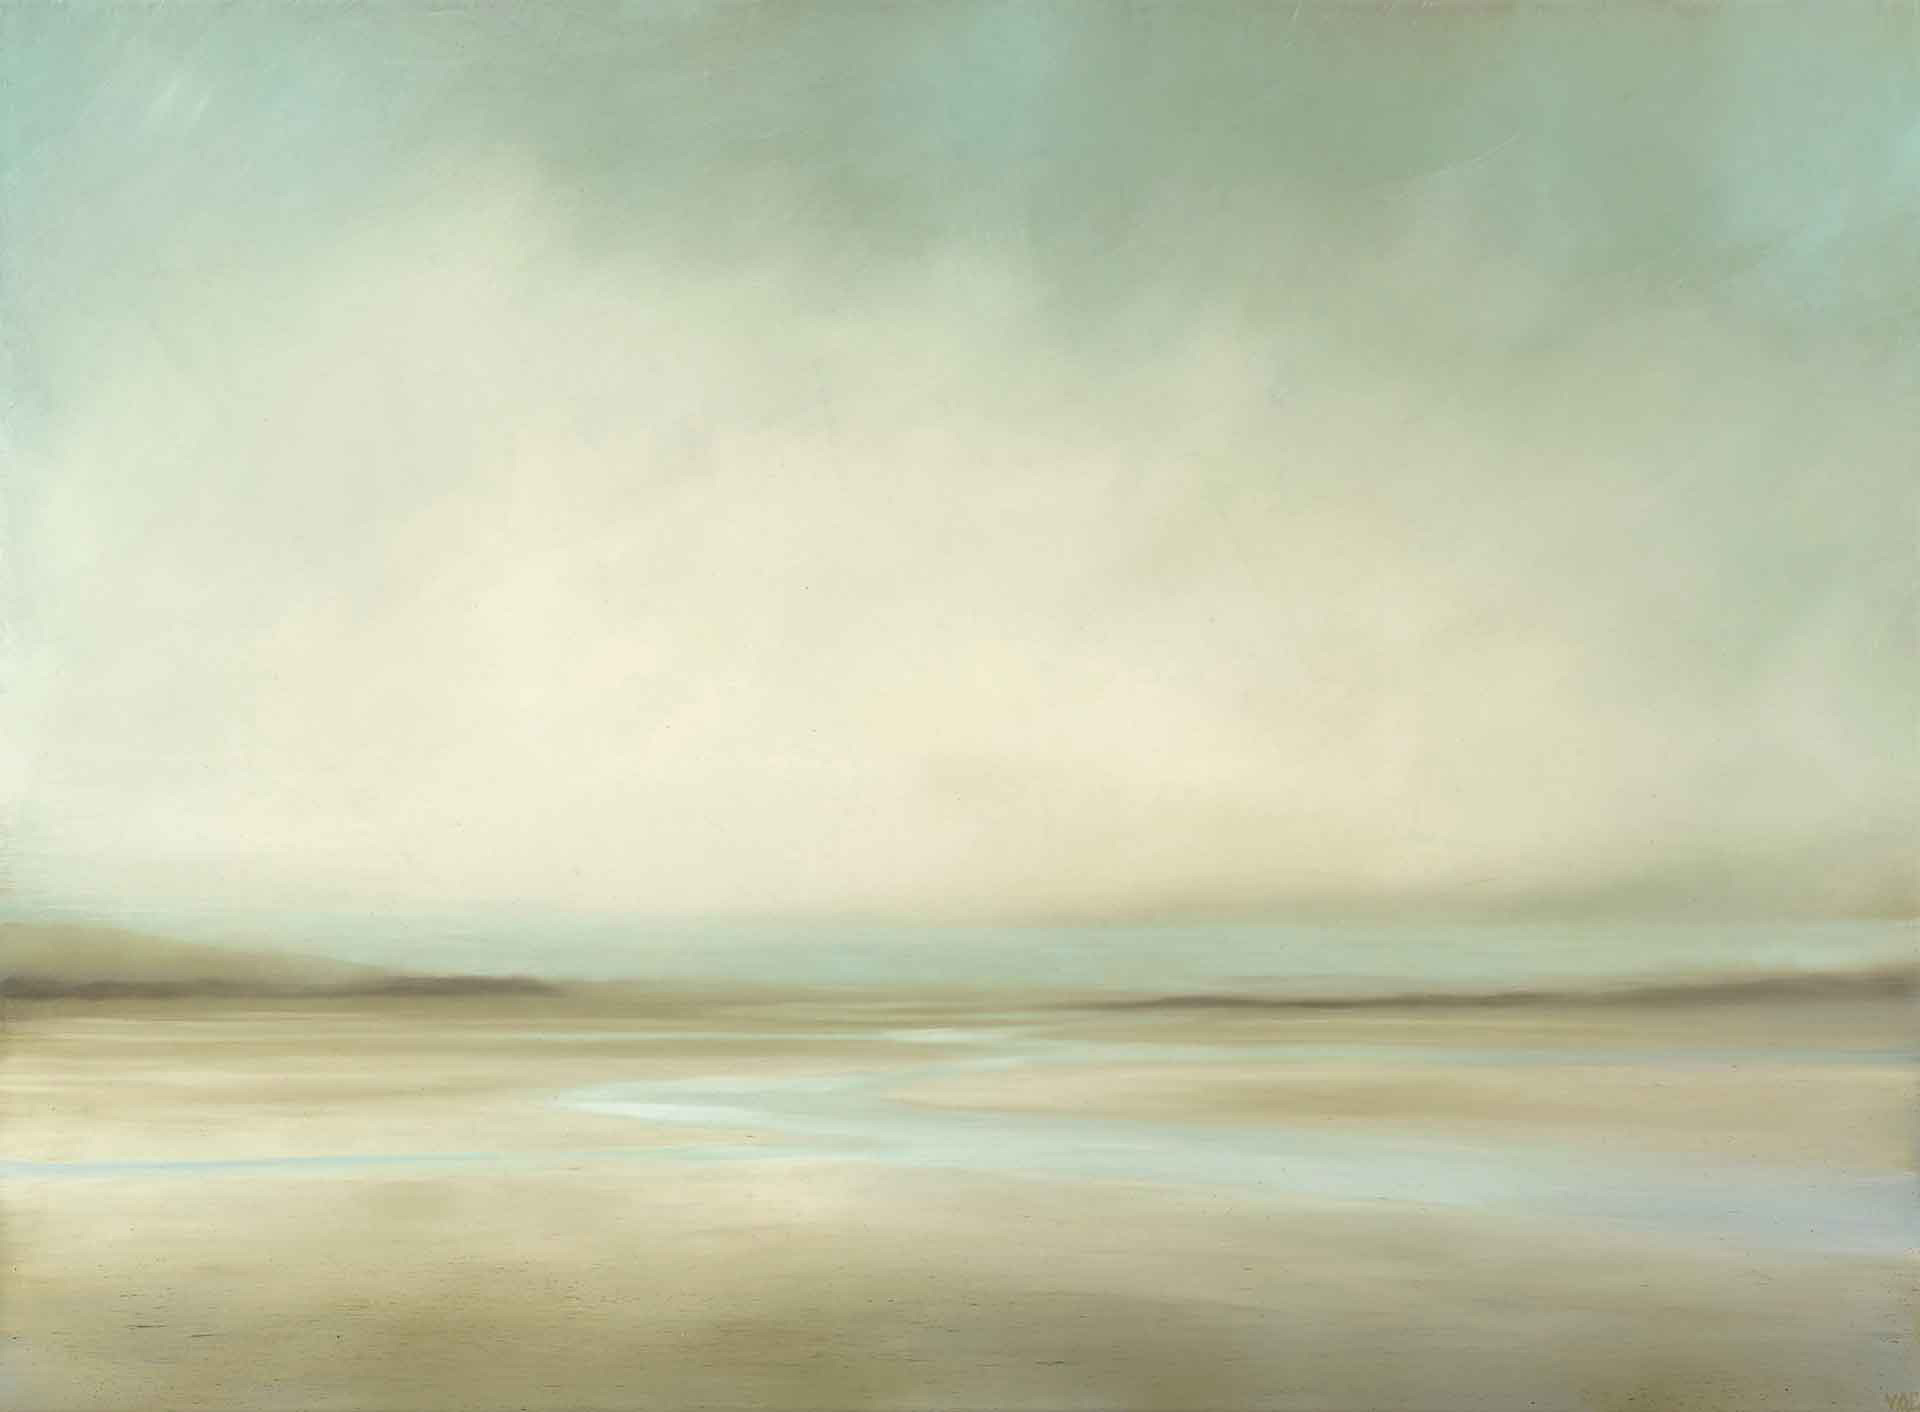 Sky, Sand and Water At Luskentyre on The Isle Of Harris In The Western Isles - Landscape Painting By Victoria Orr Ewing